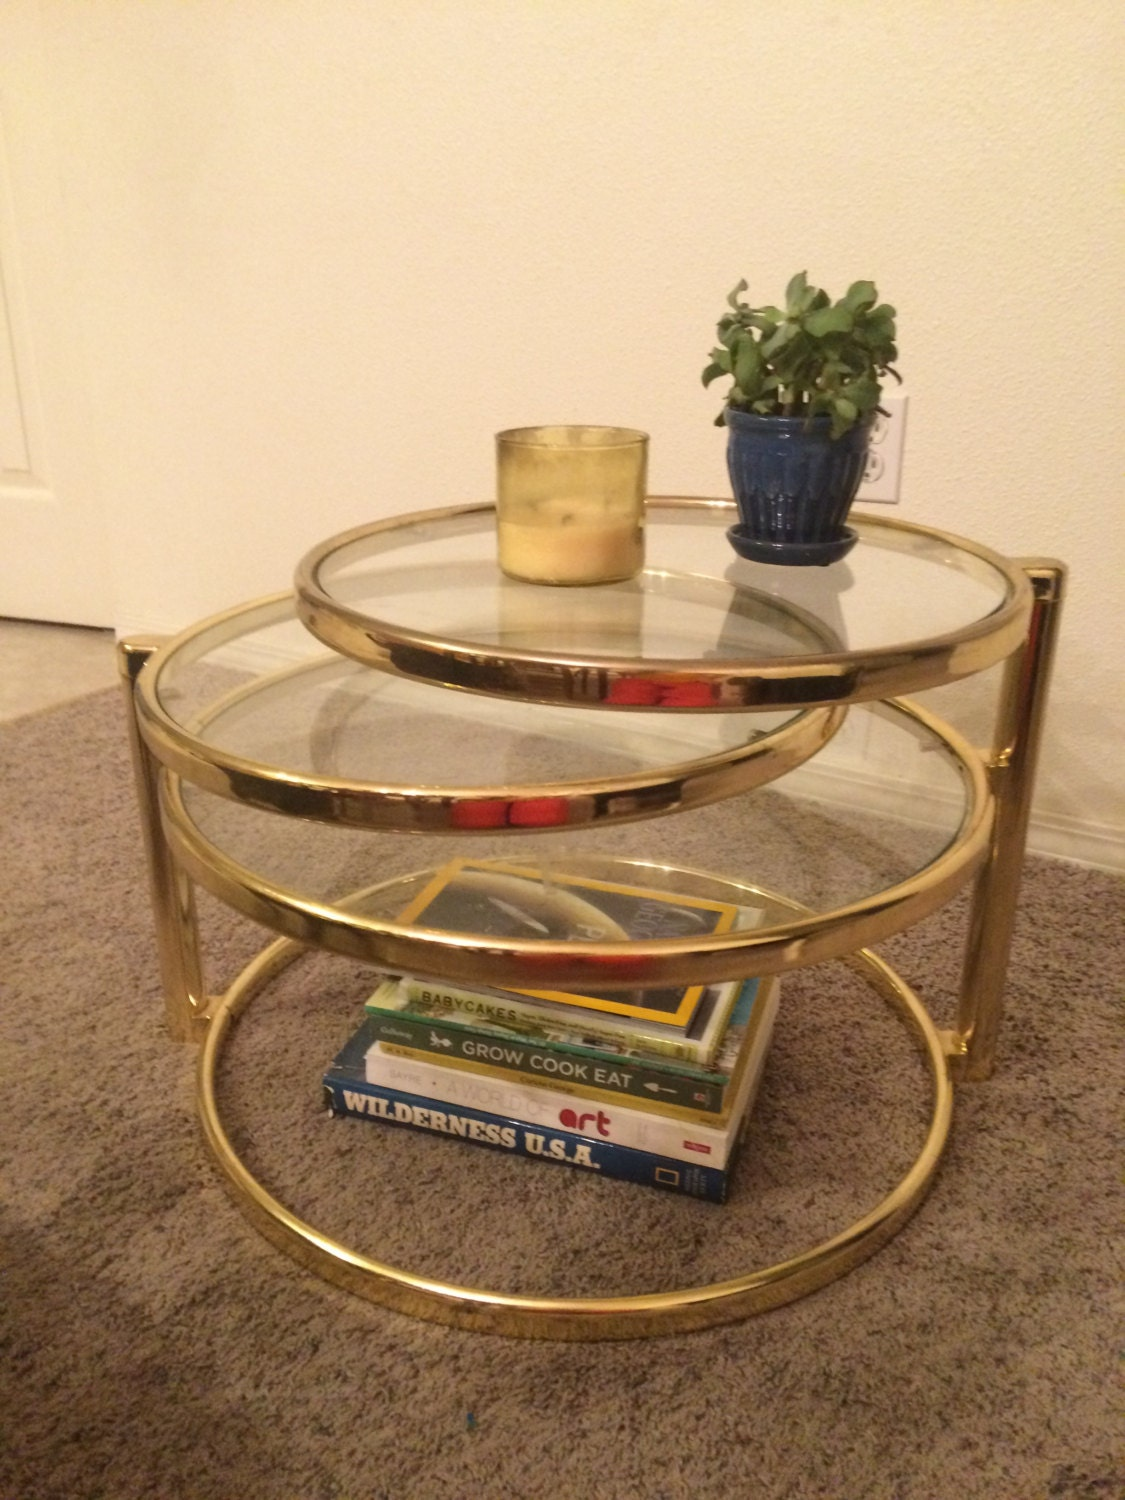 Vintage Mid Century Brass Swivel Table Coffee Table 3 Tier Round Glass Swing Out Table Hollywood Regency Modern Haute Juice